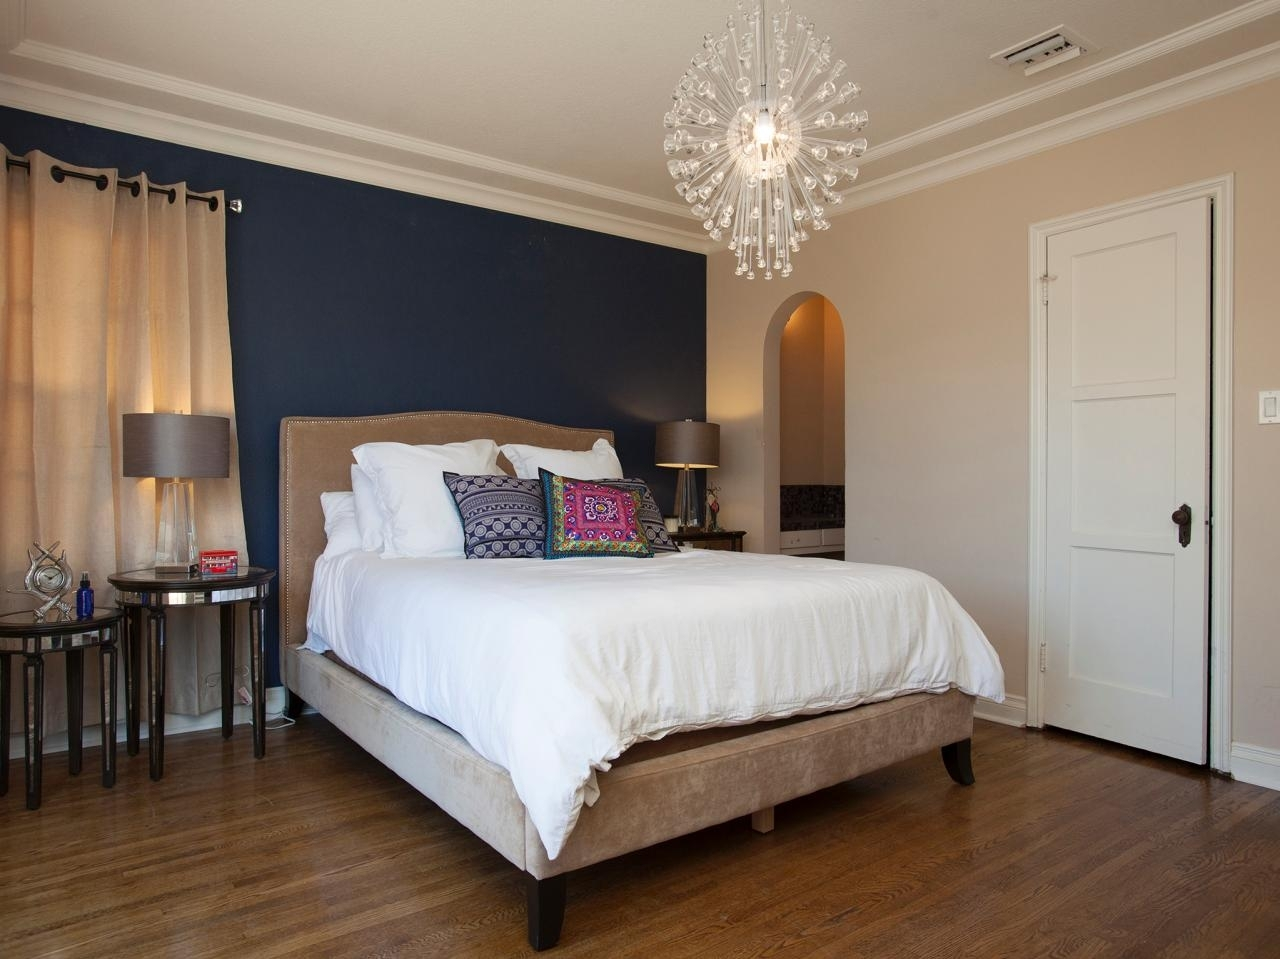 Bedroom | Dark Blue Wall Accent With Burlywood Color Base Intended For Best And Newest Blue Wall Accents (View 5 of 15)